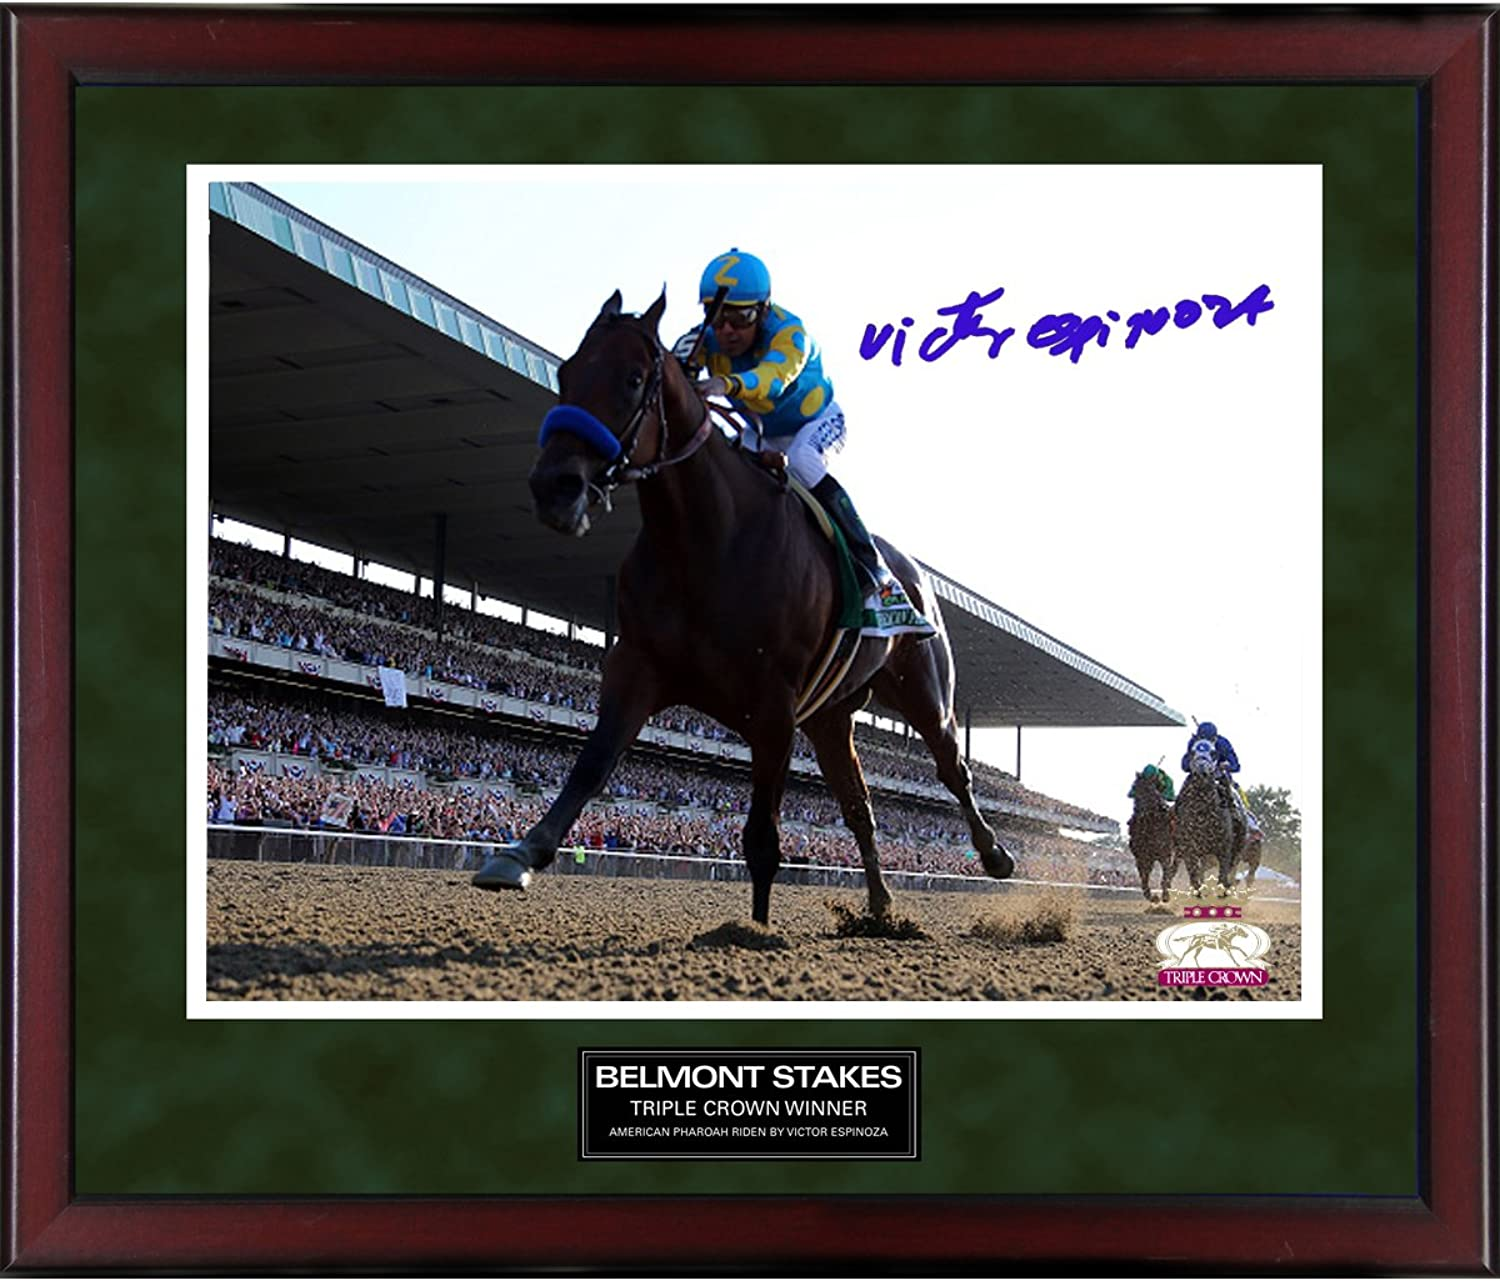 Steiner Sports Victor Espinoza Winning Belmont Stakes Signed Framed Photo, 16  x 20